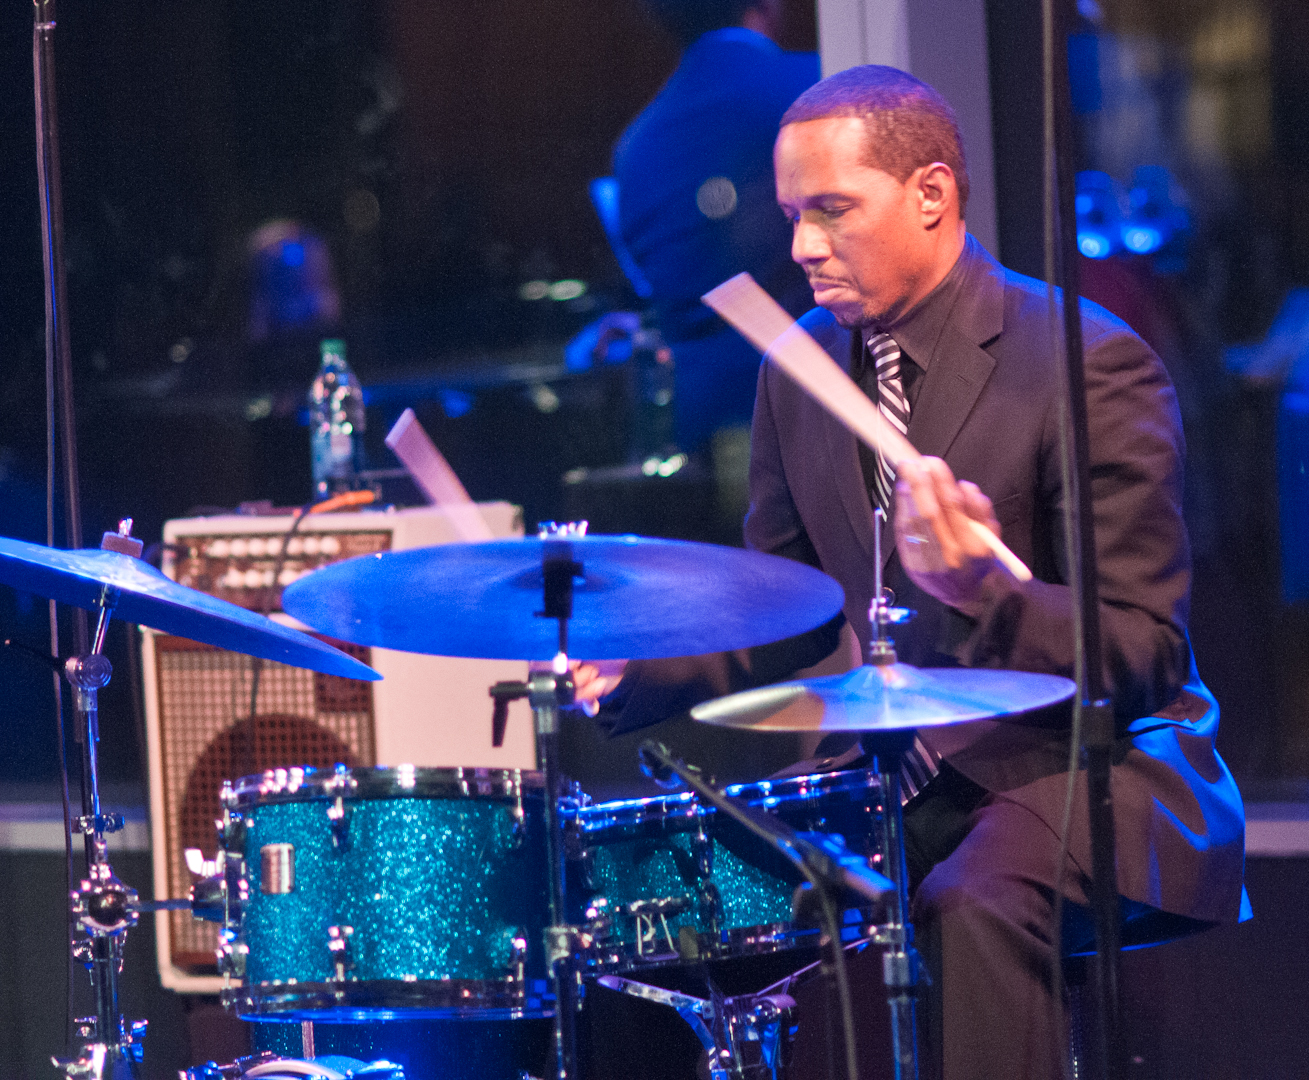 Willie Jones III and Sextet Presents the Music of Max Roach at Dizzy's